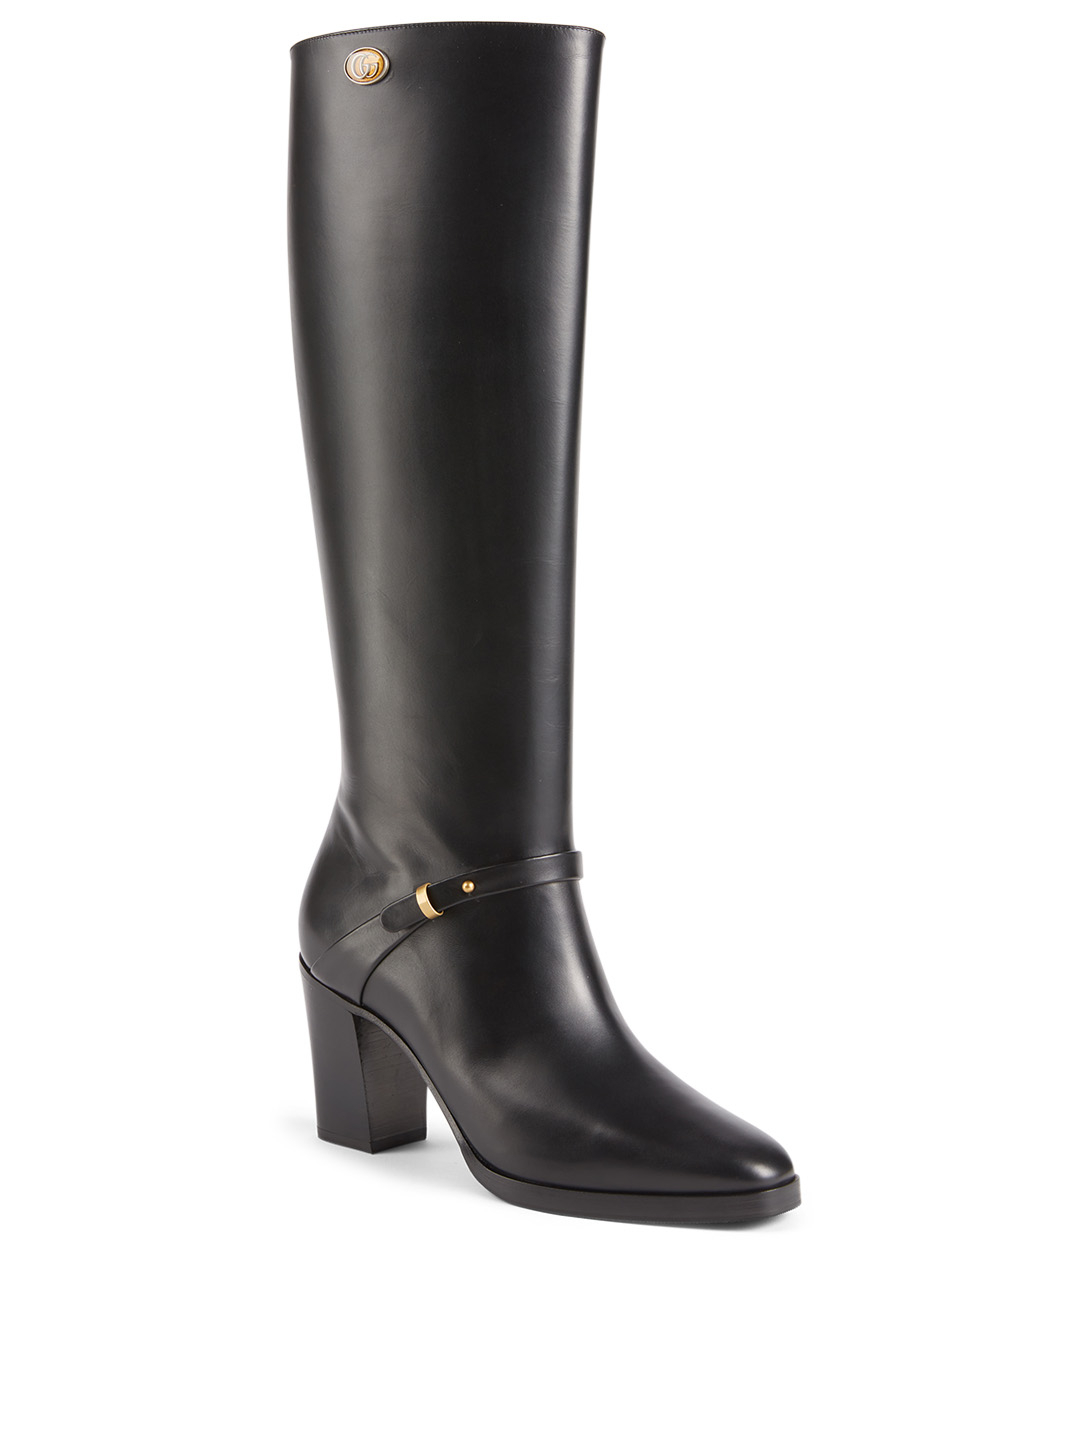 GUCCI Leather Knee-High Boots With Double G Women's Black